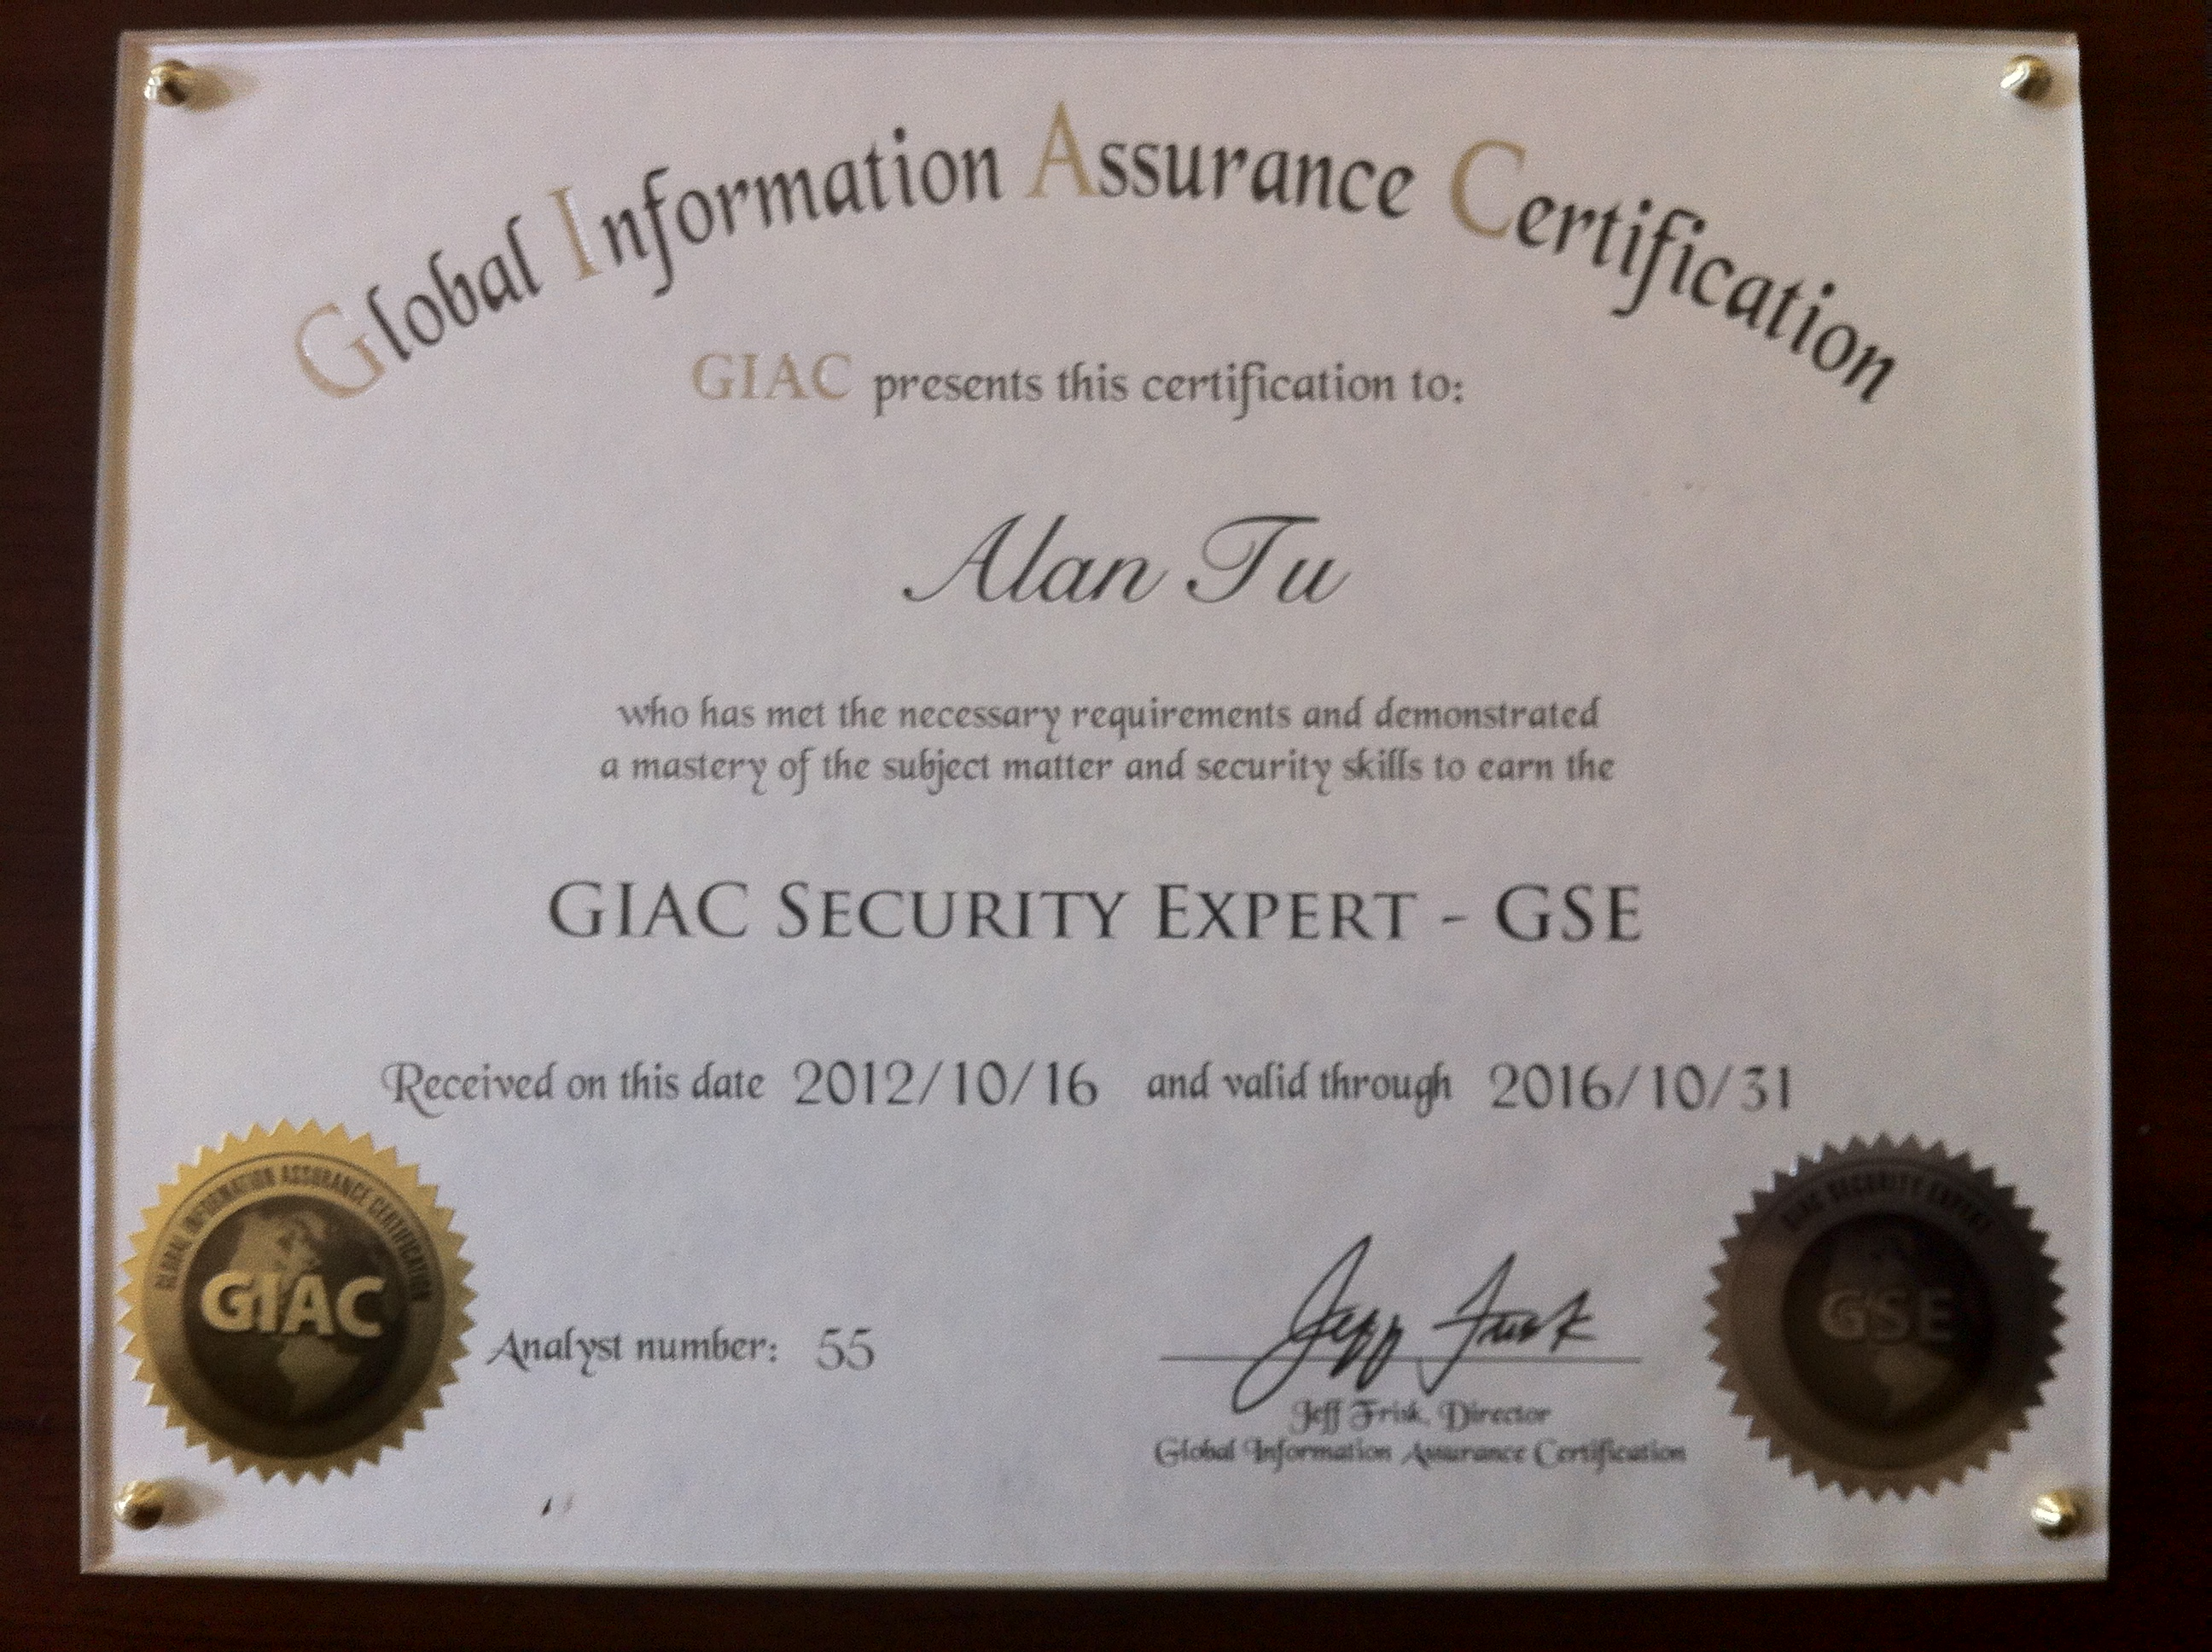 Gse Certification Images - Free Certificates for All